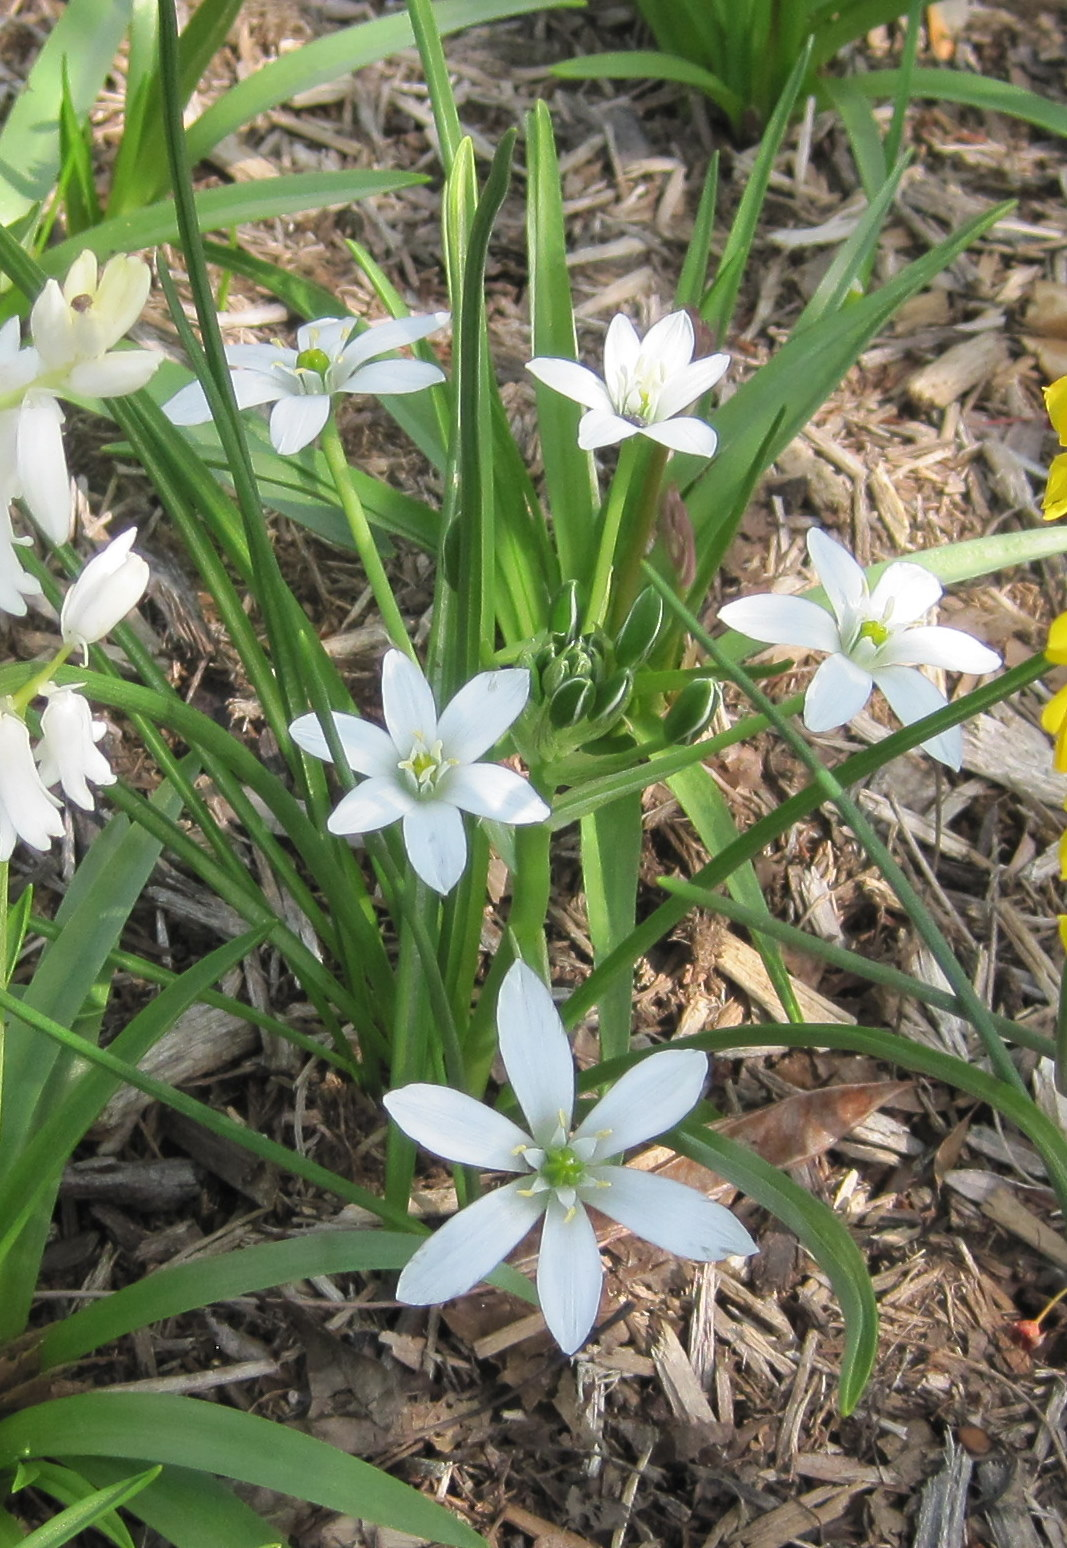 Star-of-Bethlehem Discovered In Woodland Follies